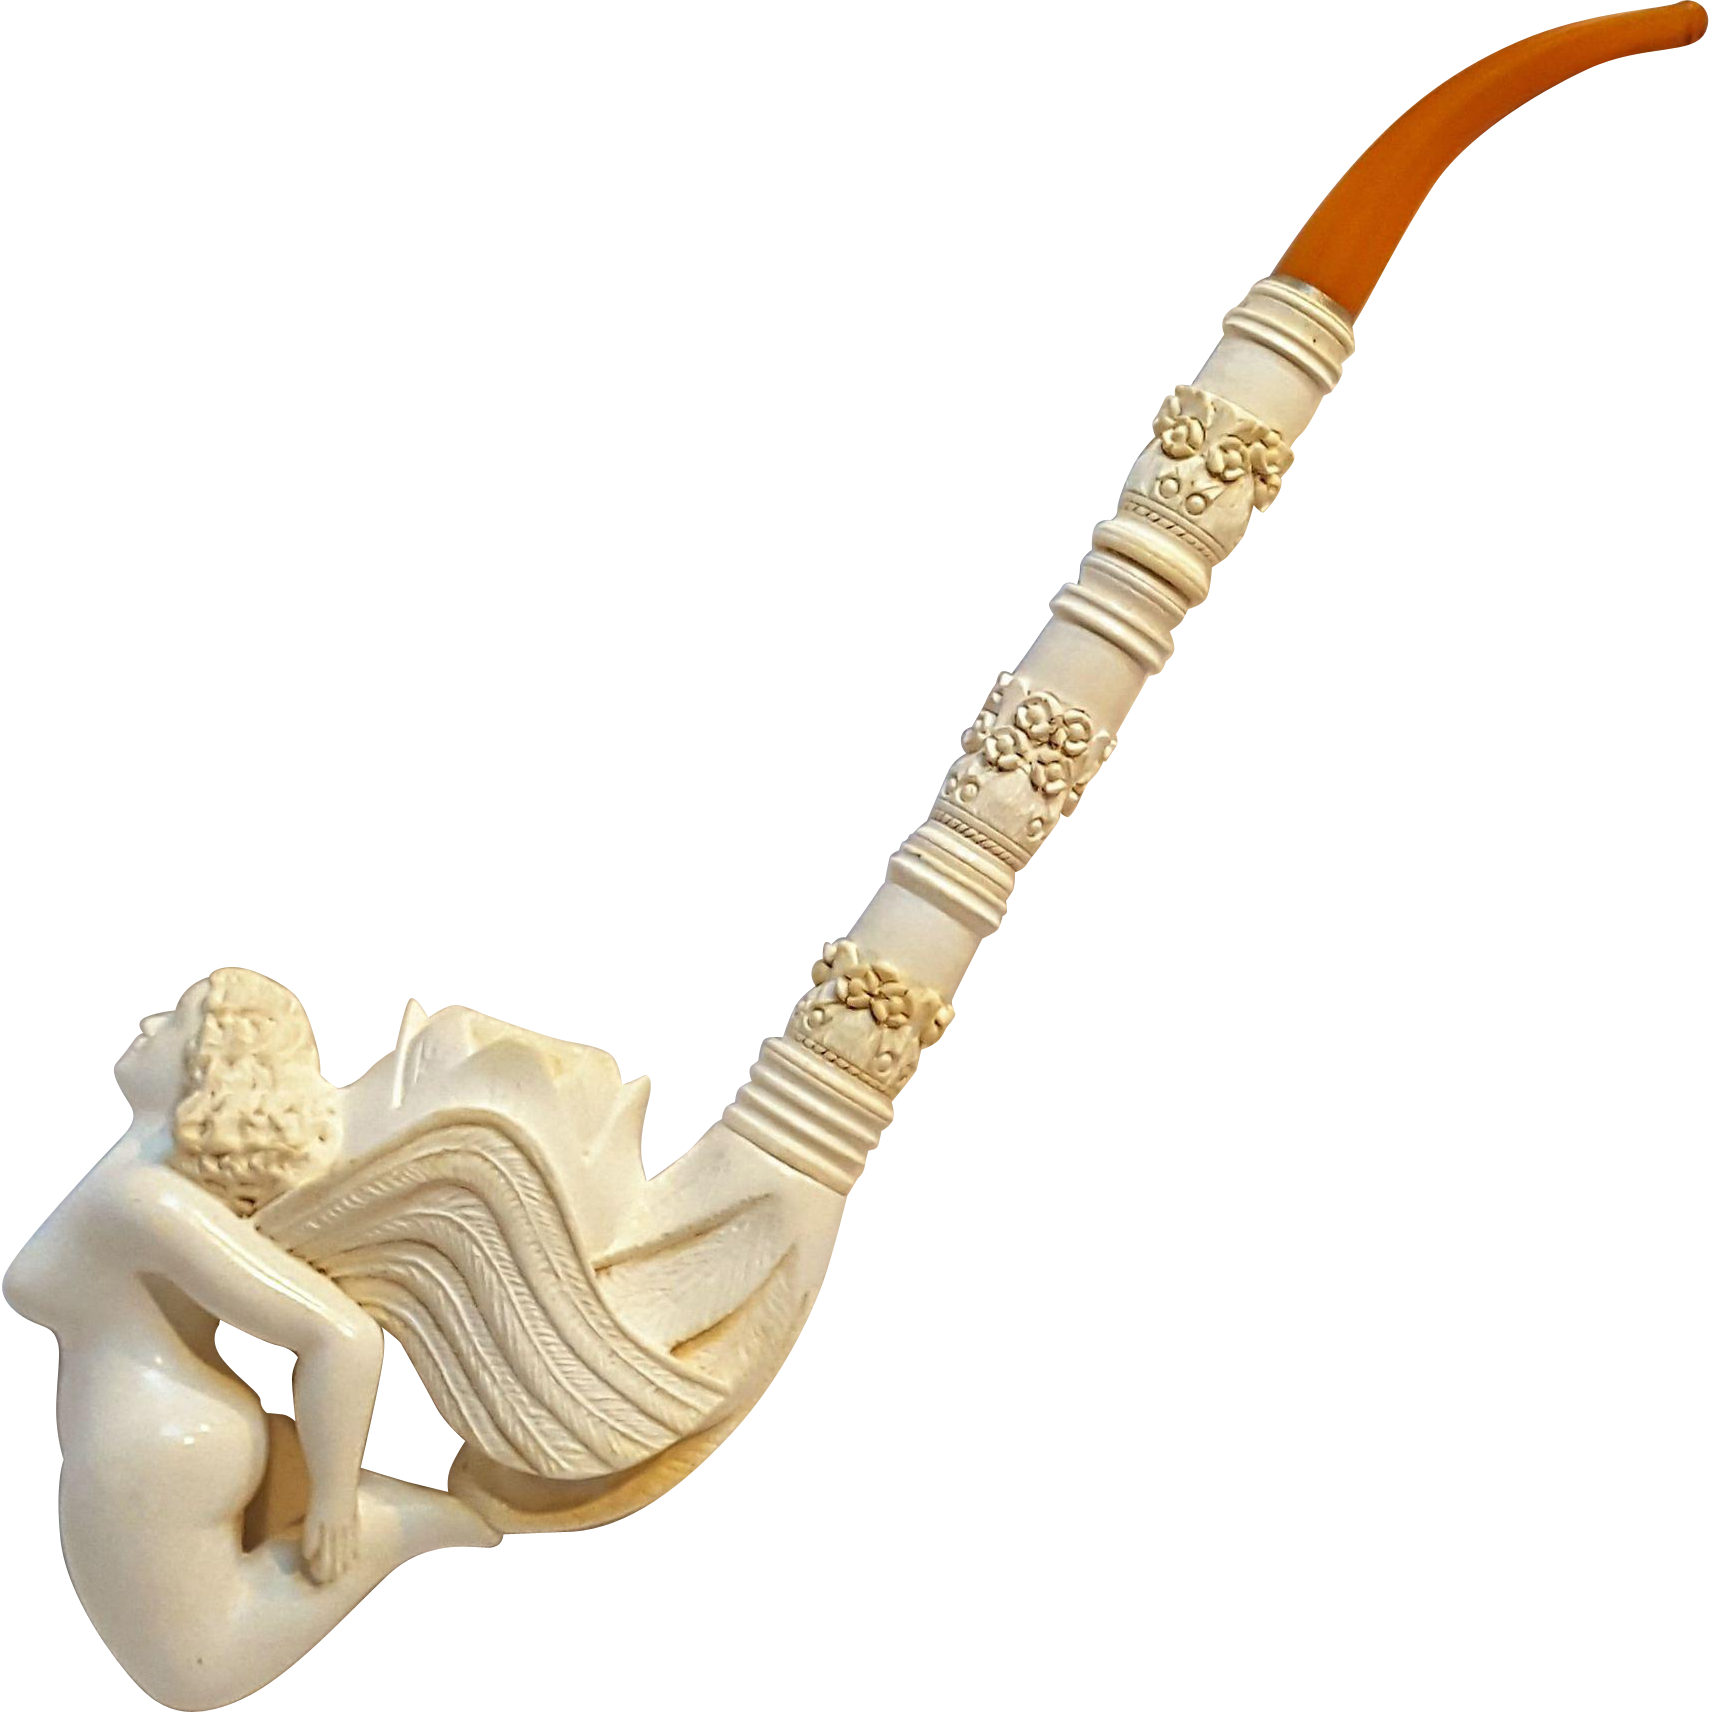 Turkish Meerschaum pipe winged nude fairy lotus flower very long